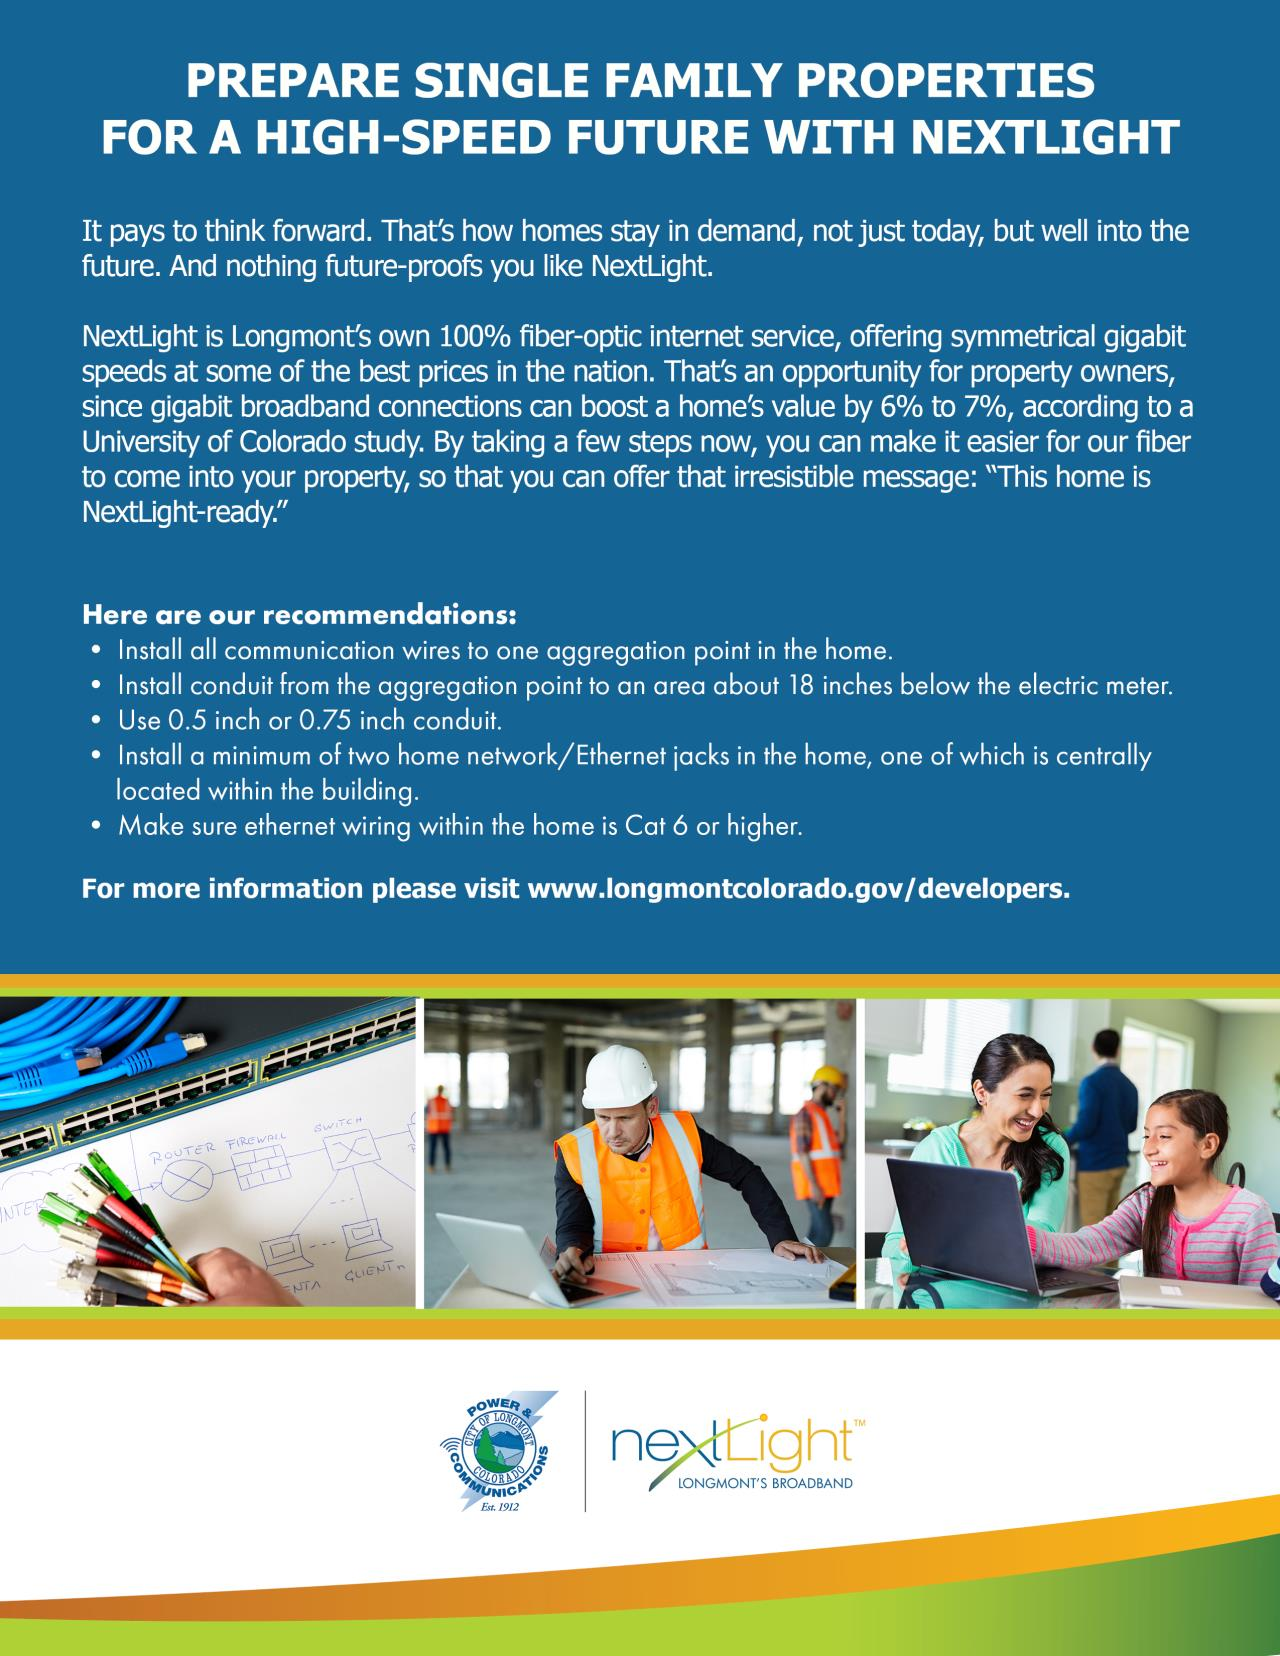 NextLight installation flyer for single family home developers